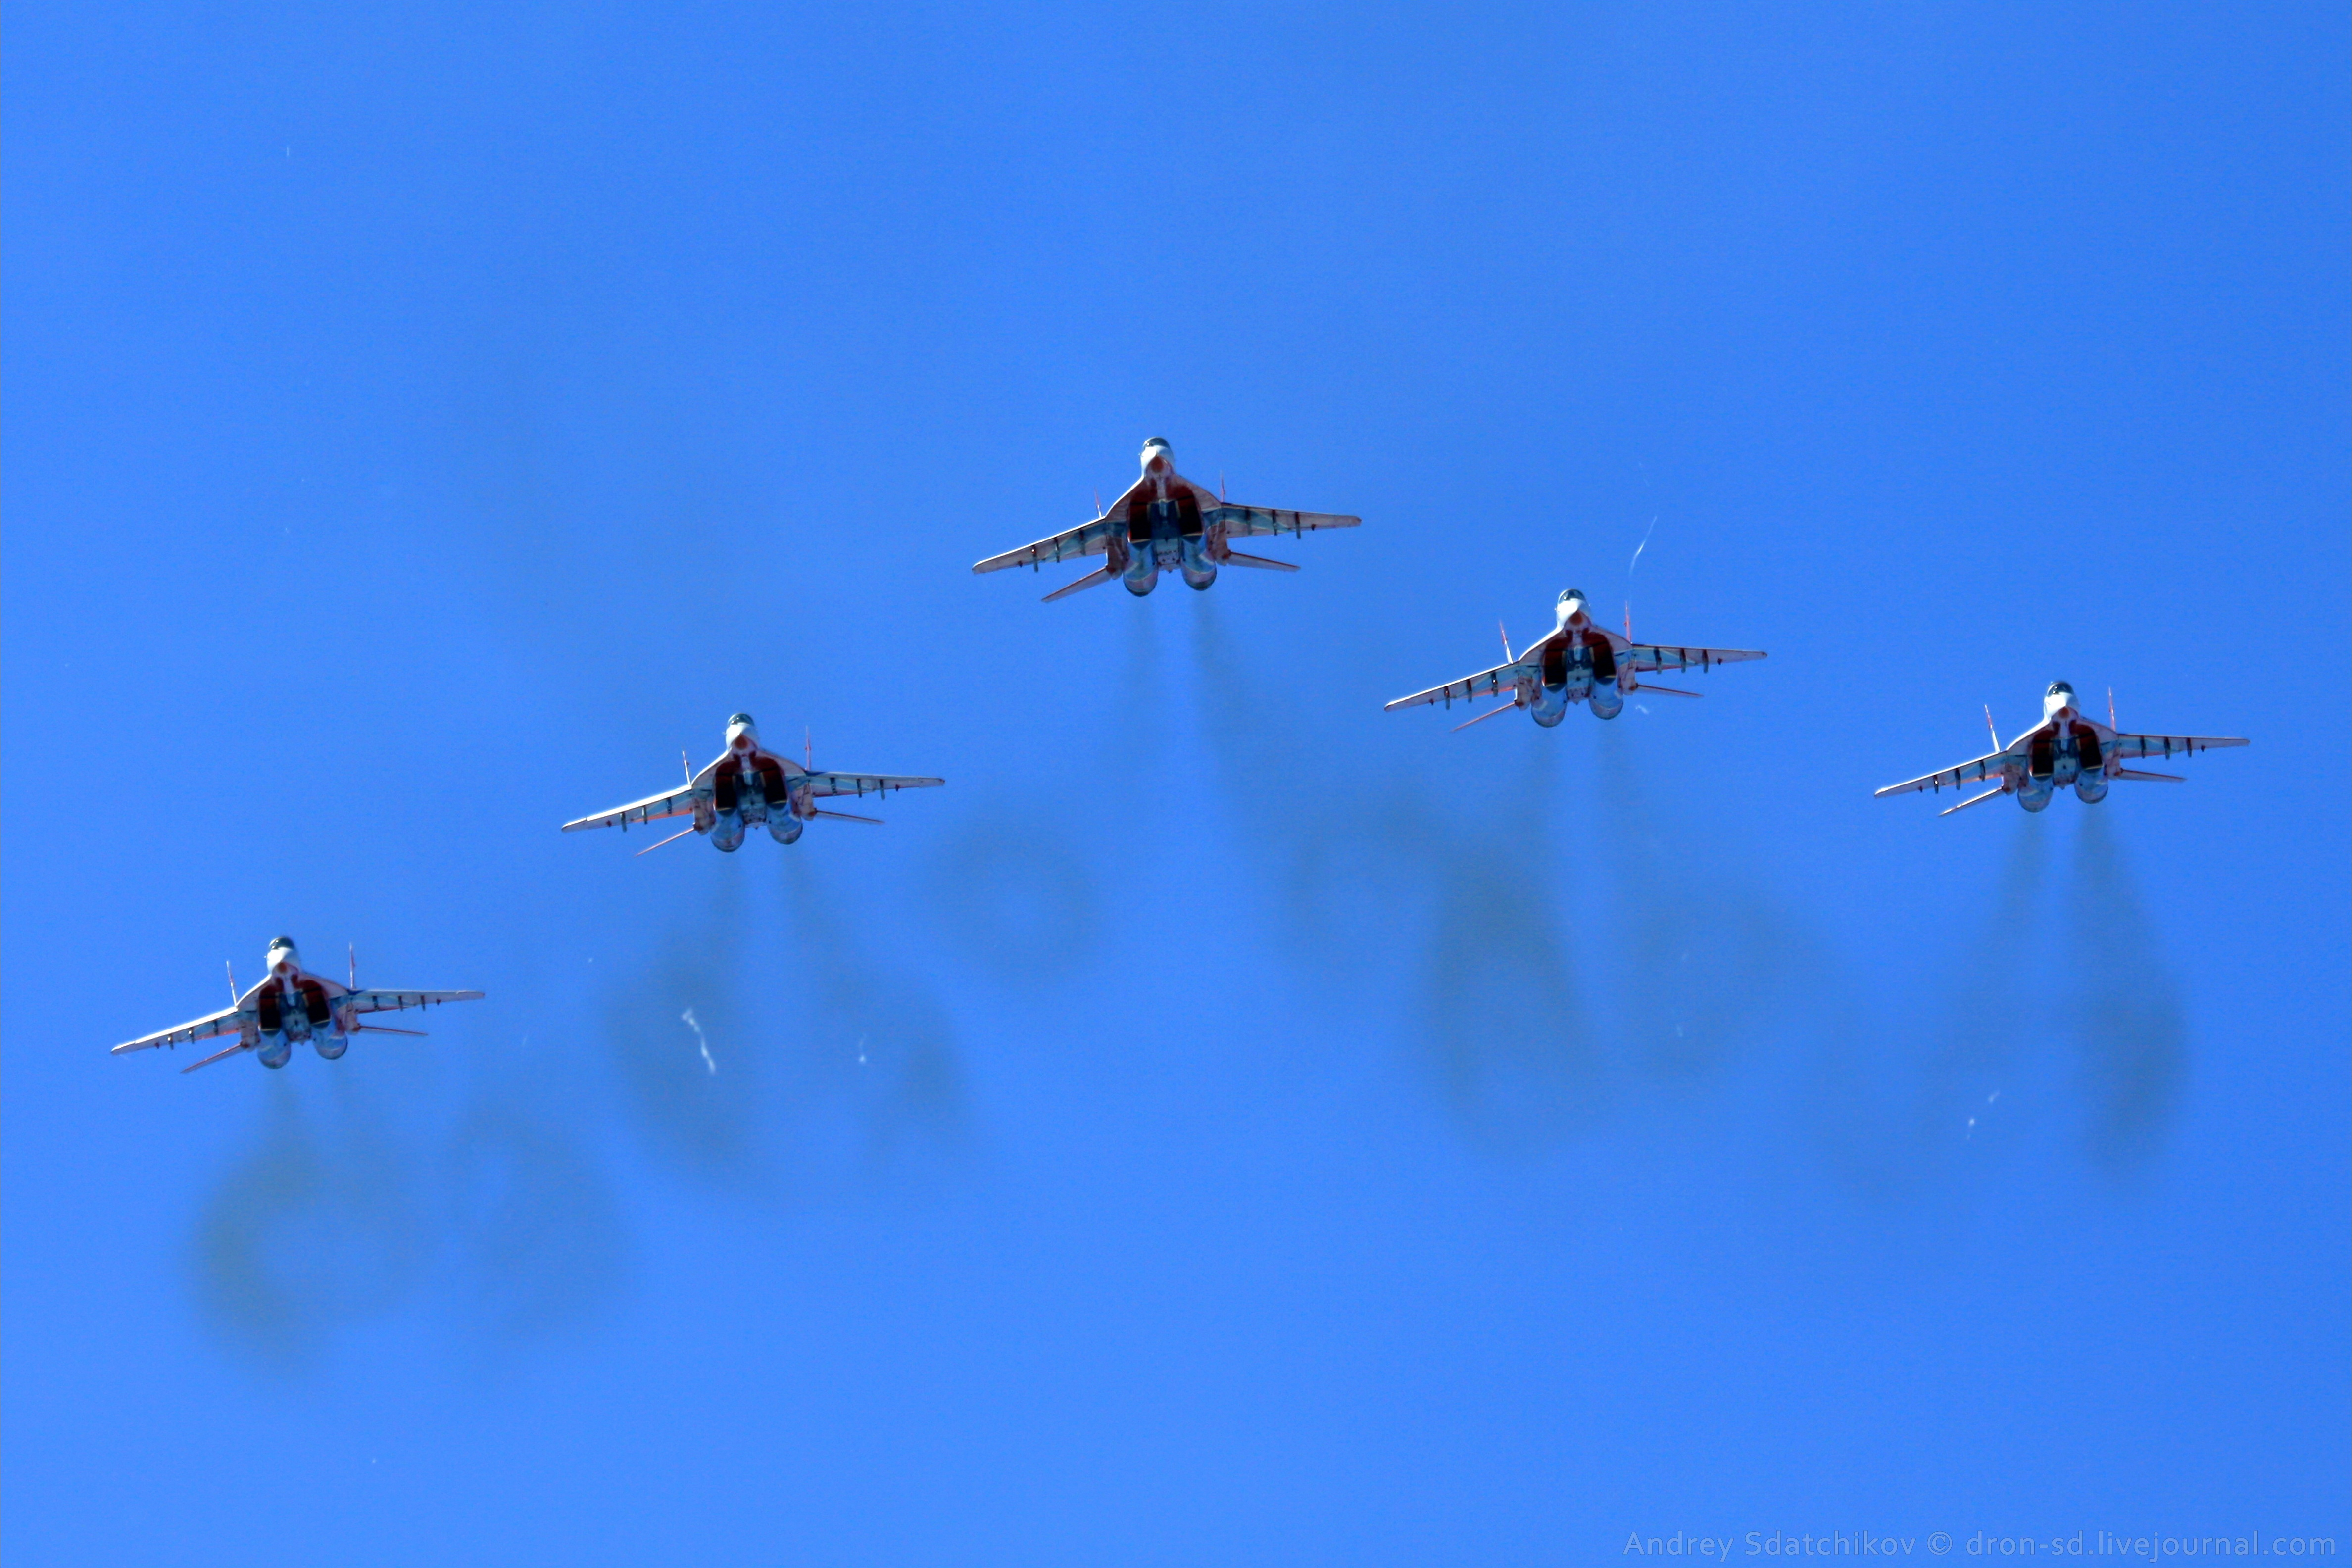 MAKS-2015 Air Show: Photos and Discussion - Page 3 0_1226a2_132f08a0_orig